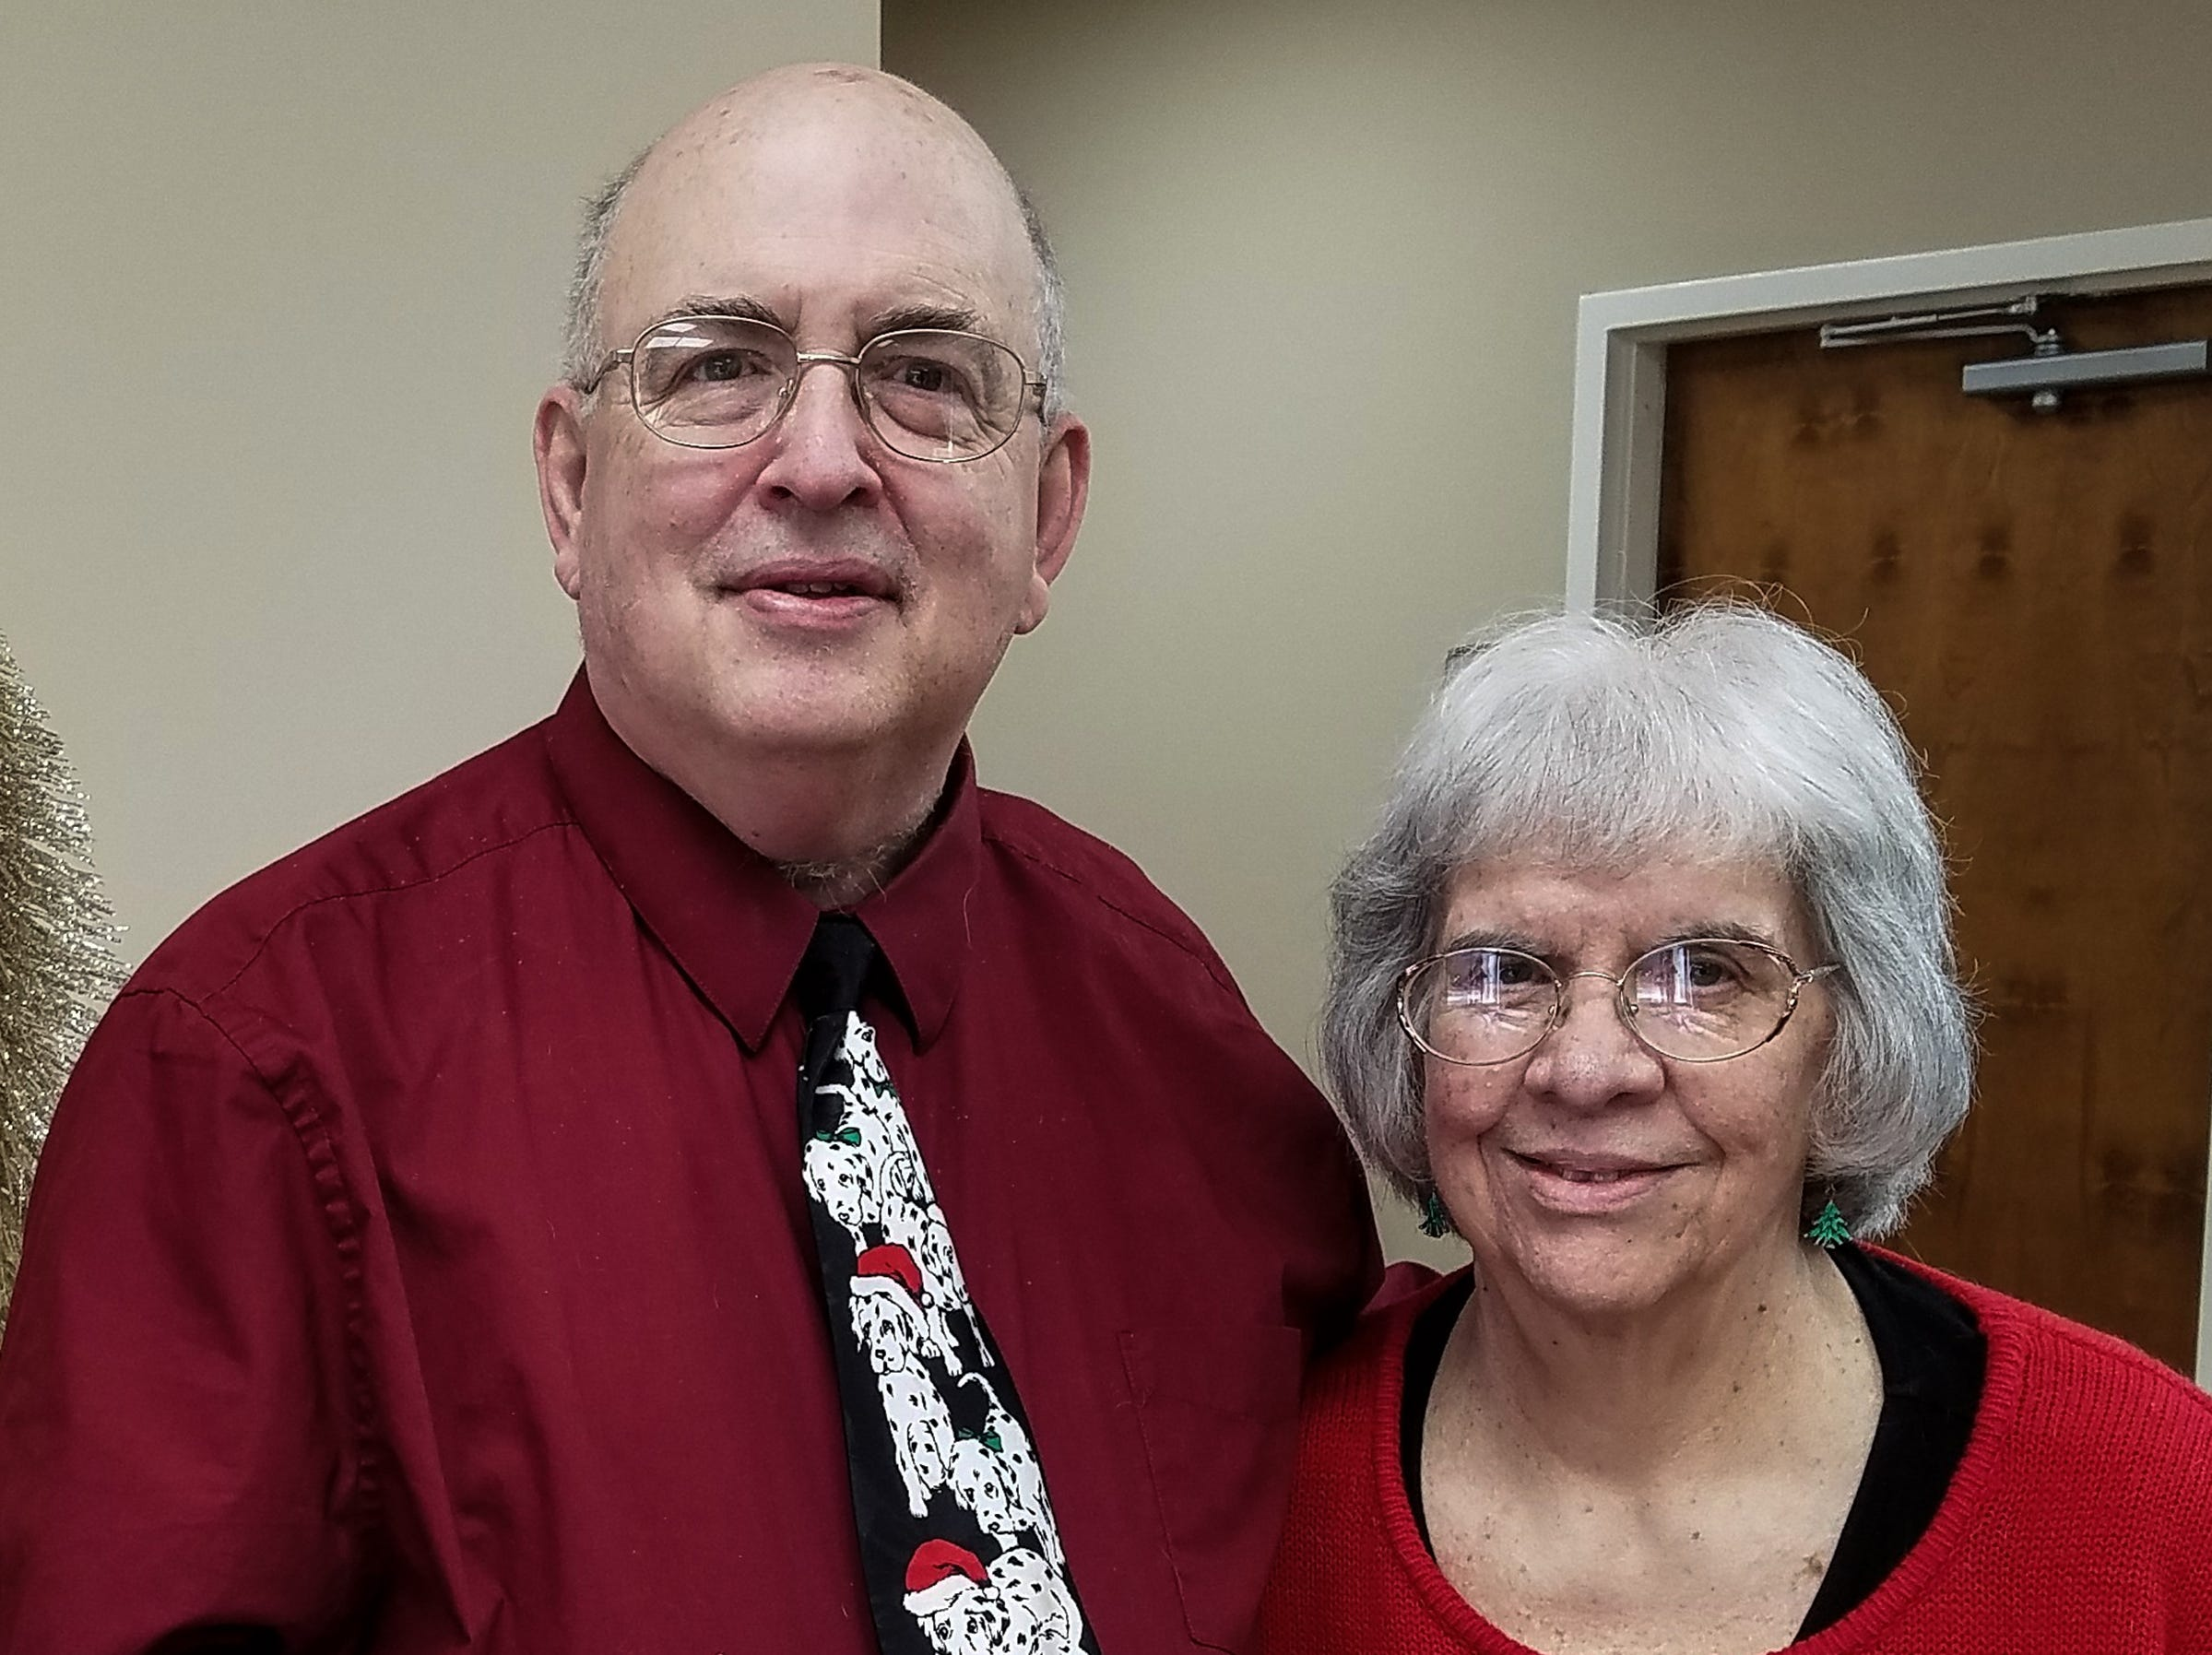 Richard and Linda Dupont of Easley during Christmas in December 2018.